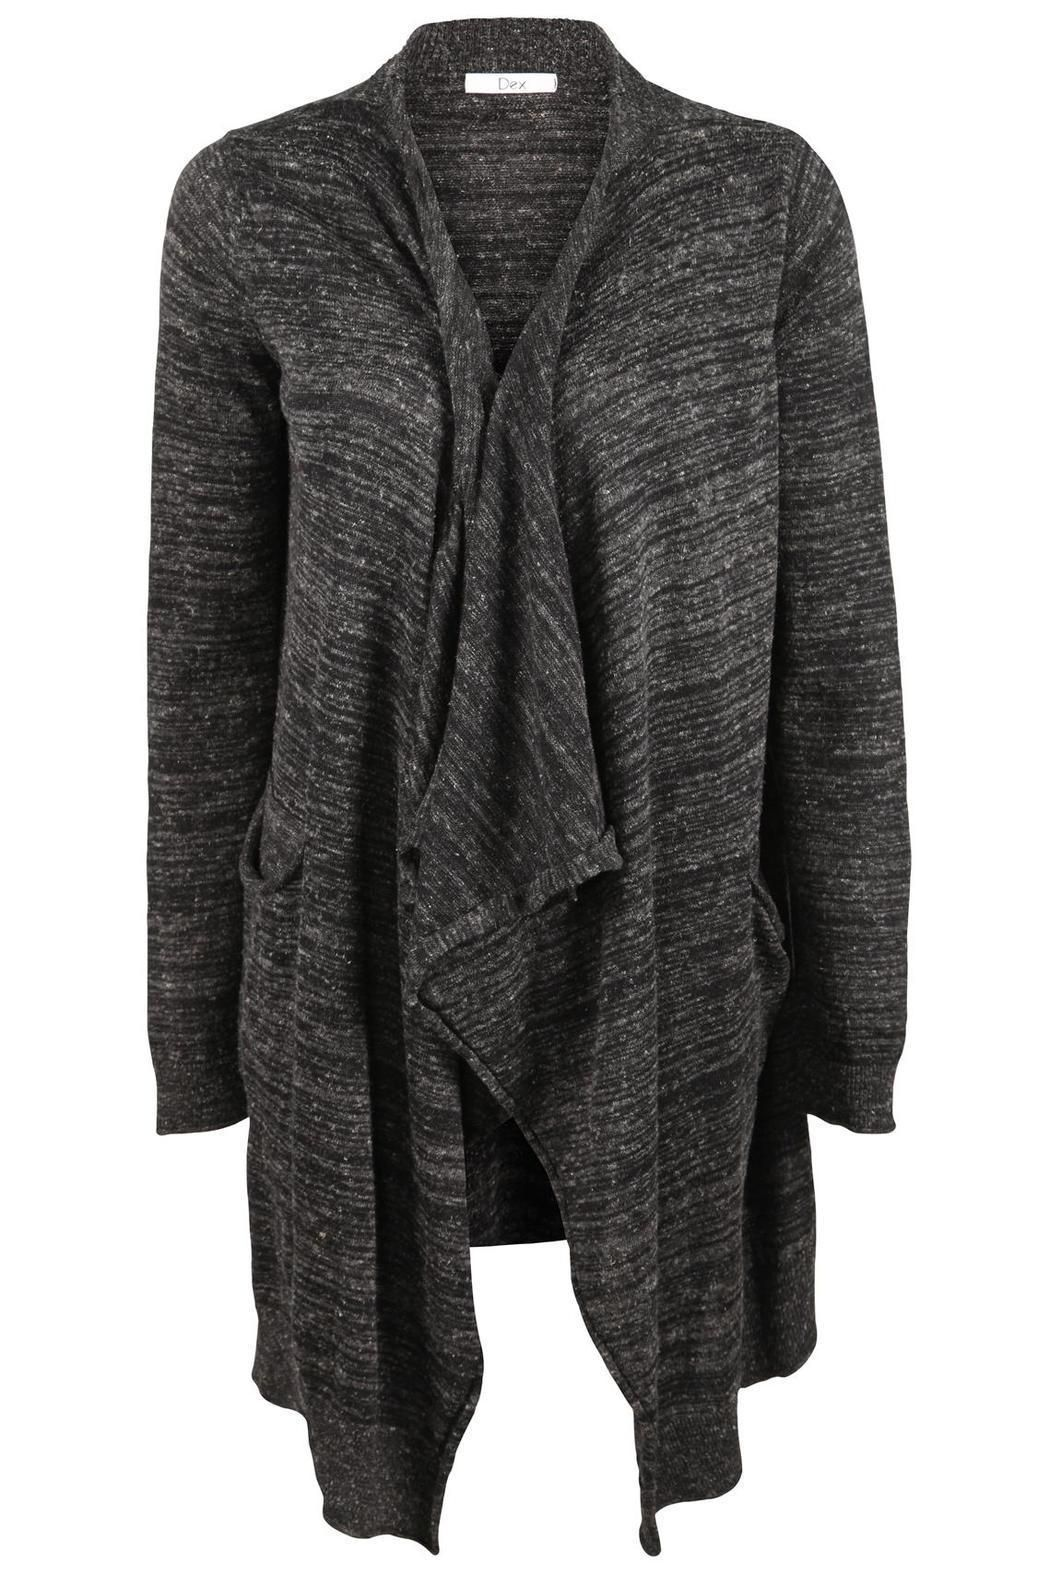 Waterfall Dex Cardigan in black-grey mix with two pockets ...